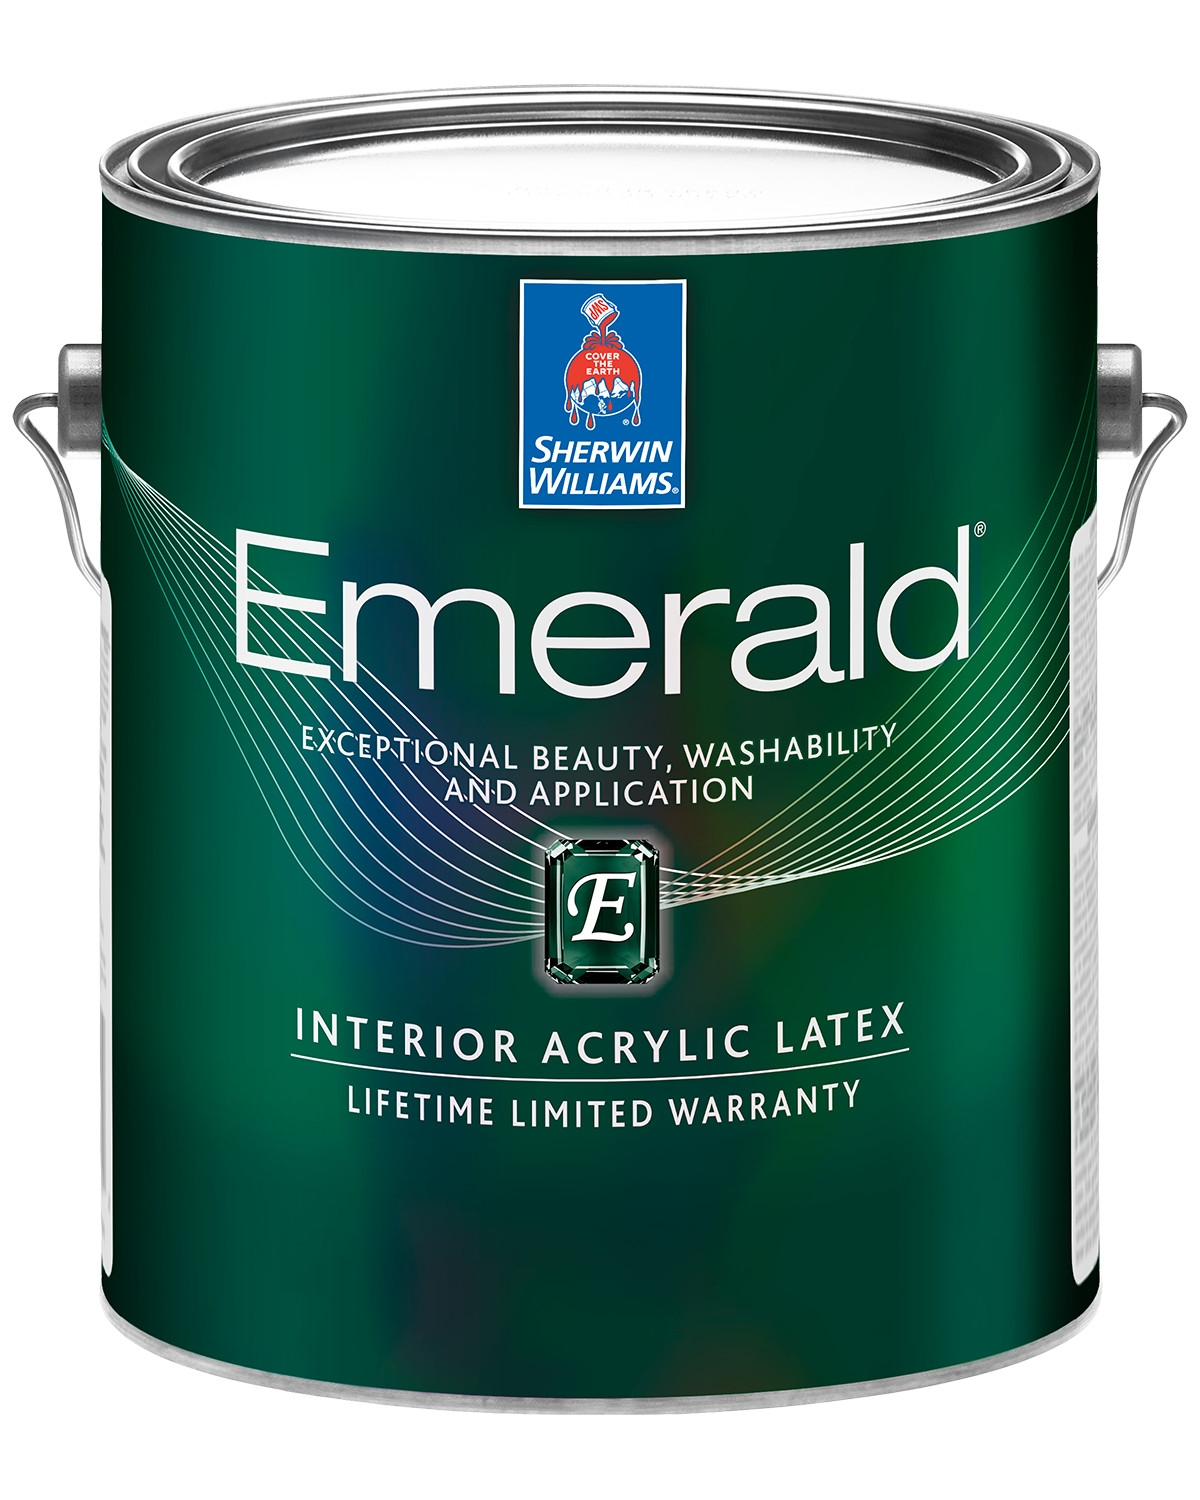 Interior Acrylic Latex Paint Uses